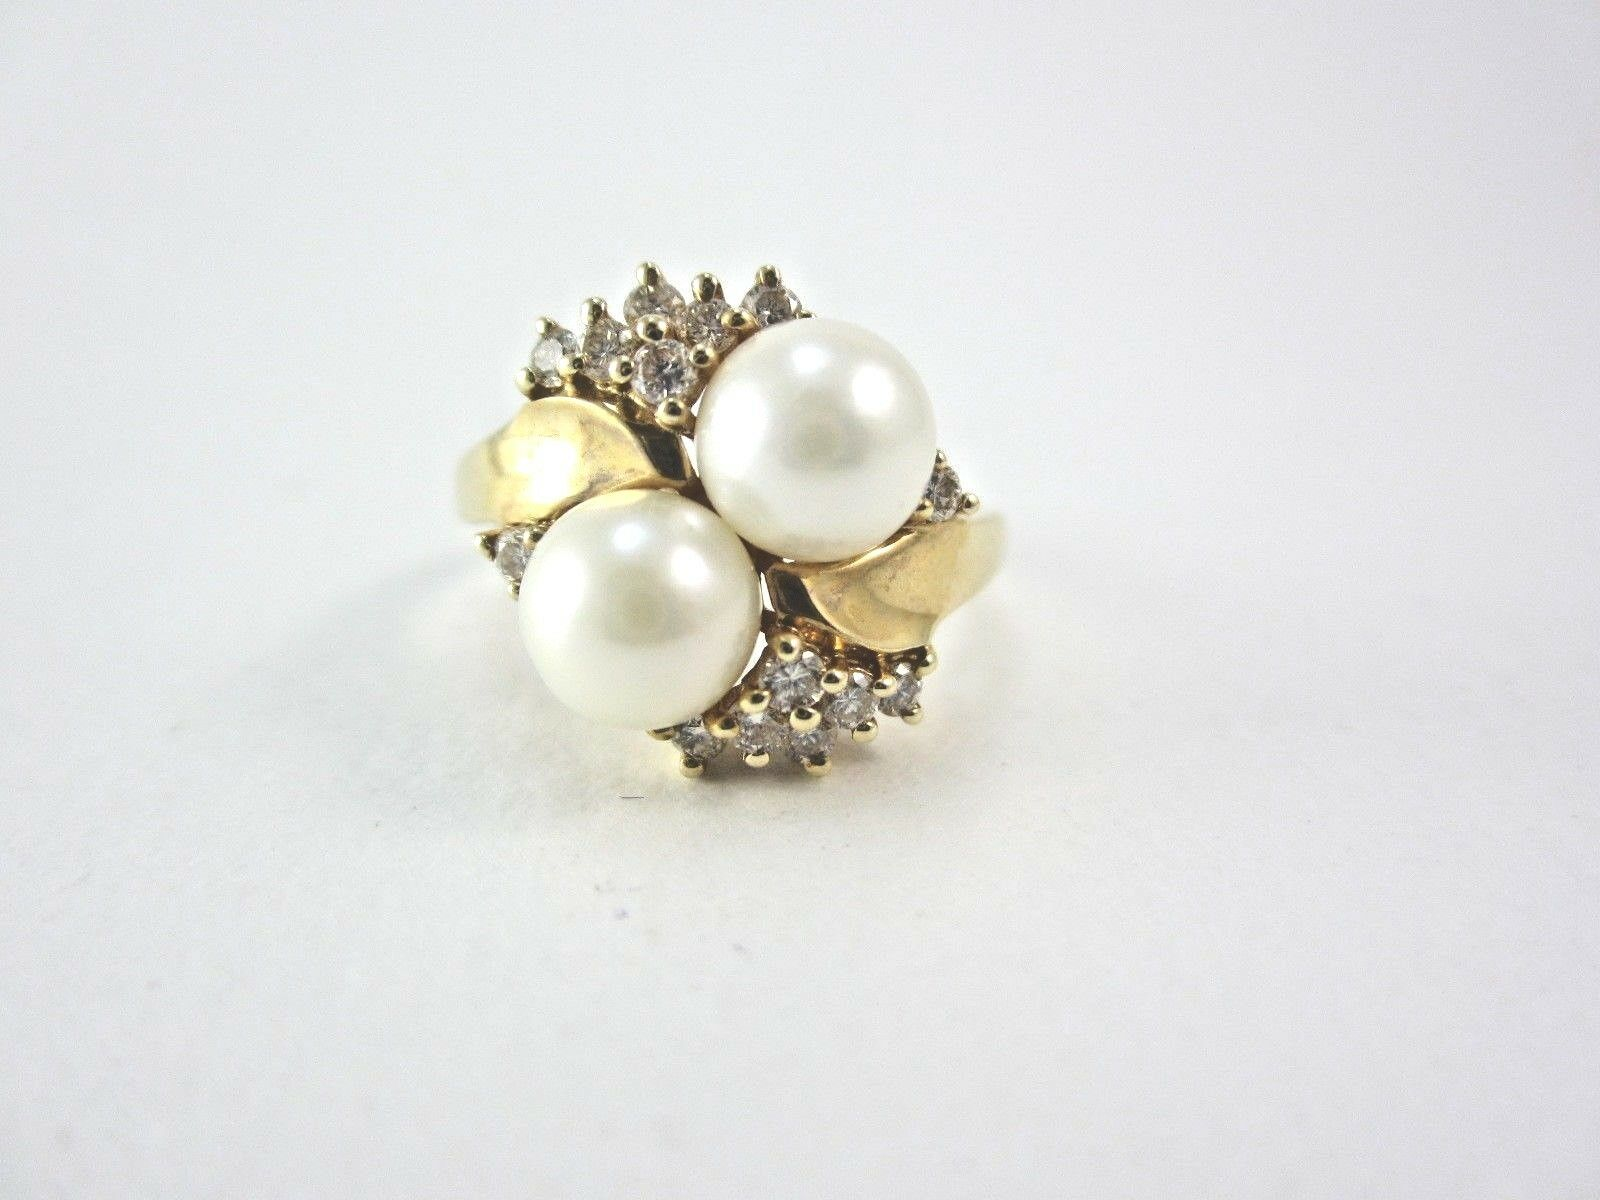 d70e9186d BEAUTIFUL 14K YELLOW gold PEARL AND RING 4.2G DIAMOND LADIES nfktcu974-Pearl